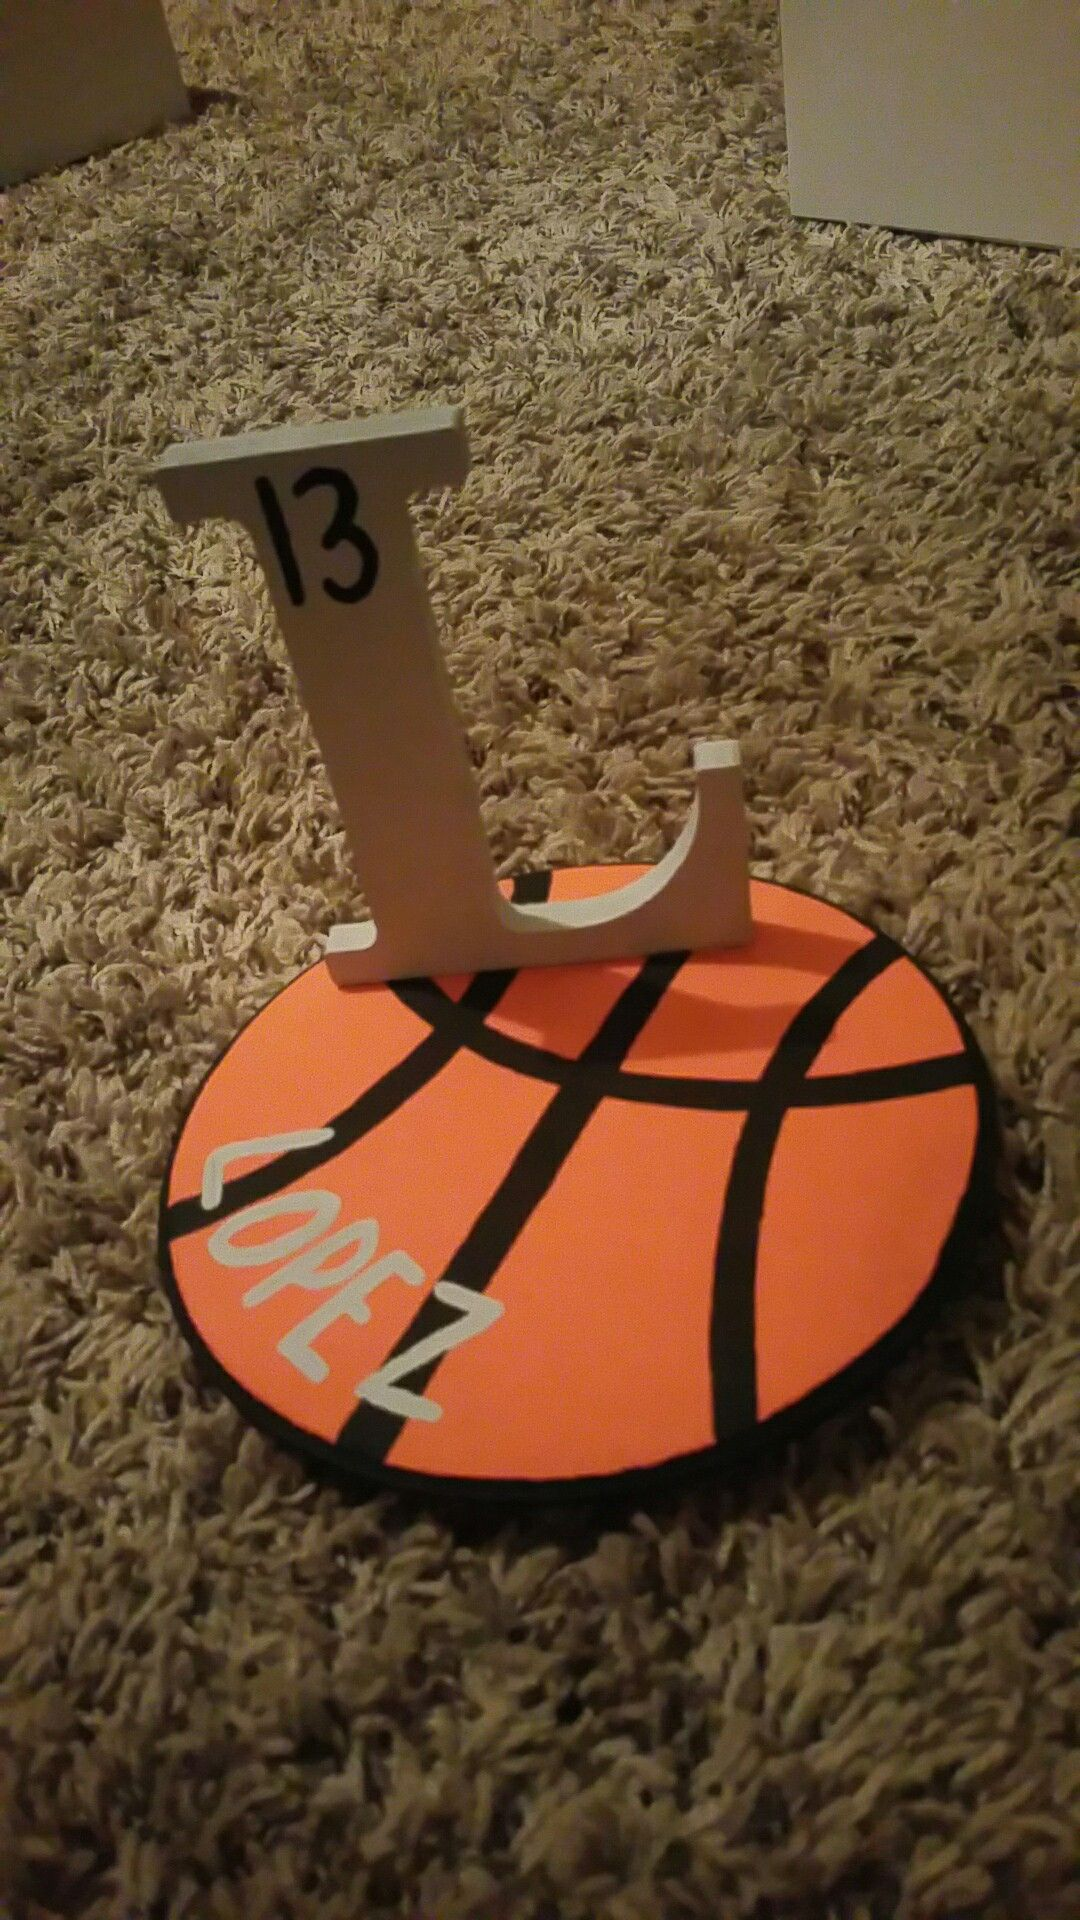 Basketball Gifts Are A Fabulous Alternative From Your More Traditional Gift Of Clothes Or Toys Basketball Team Gifts Girls Basketball Gift Team Gifts